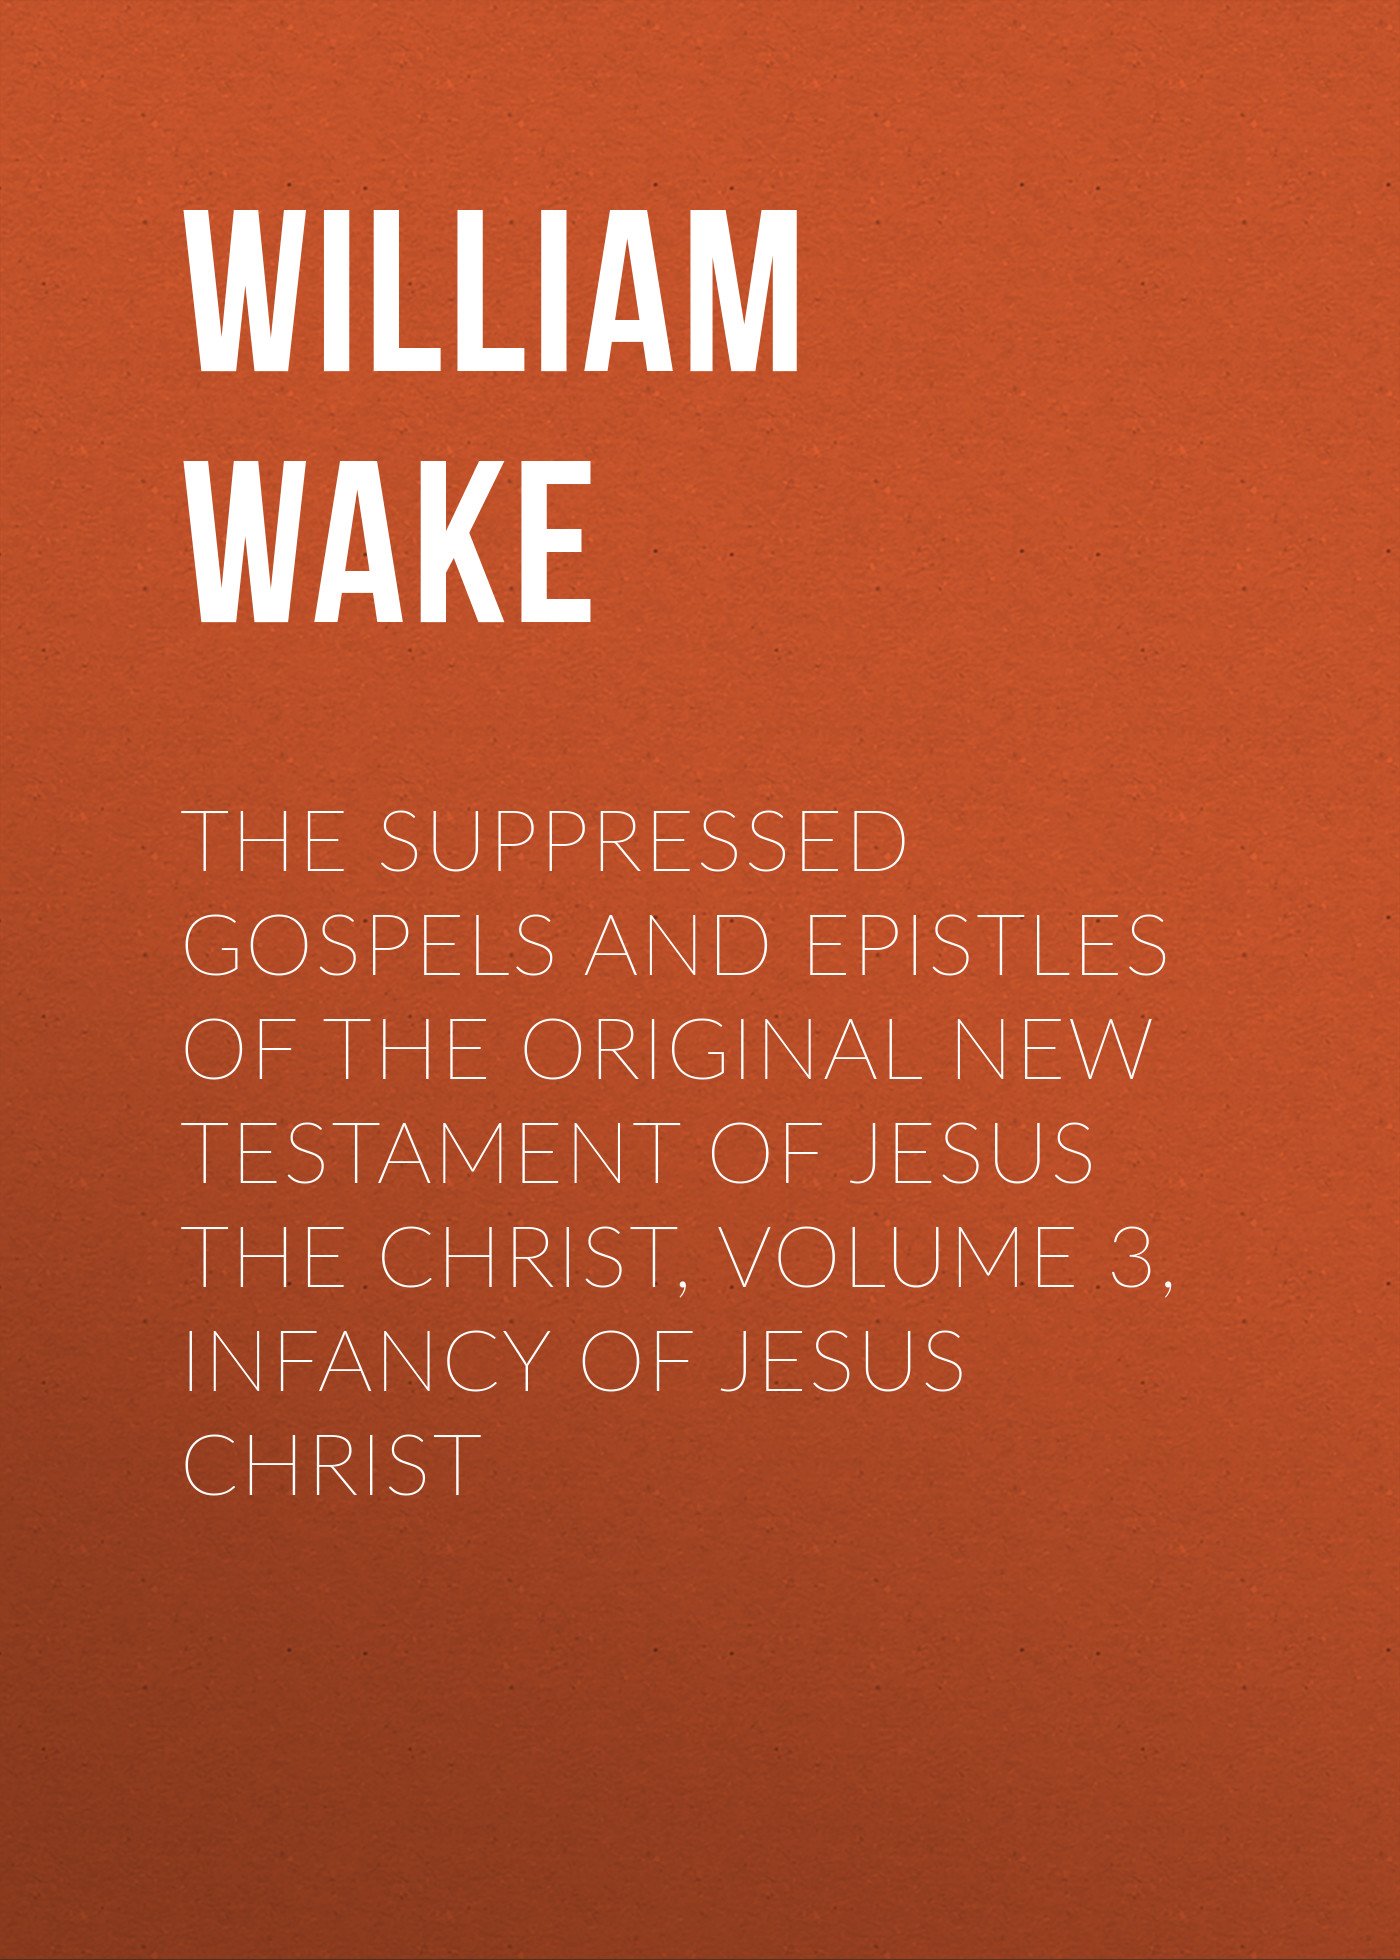 William Wake The suppressed Gospels and Epistles of the original New Testament of Jesus the Christ, Volume 3, Infancy of Jesus Christ arnaud bernard the gospels